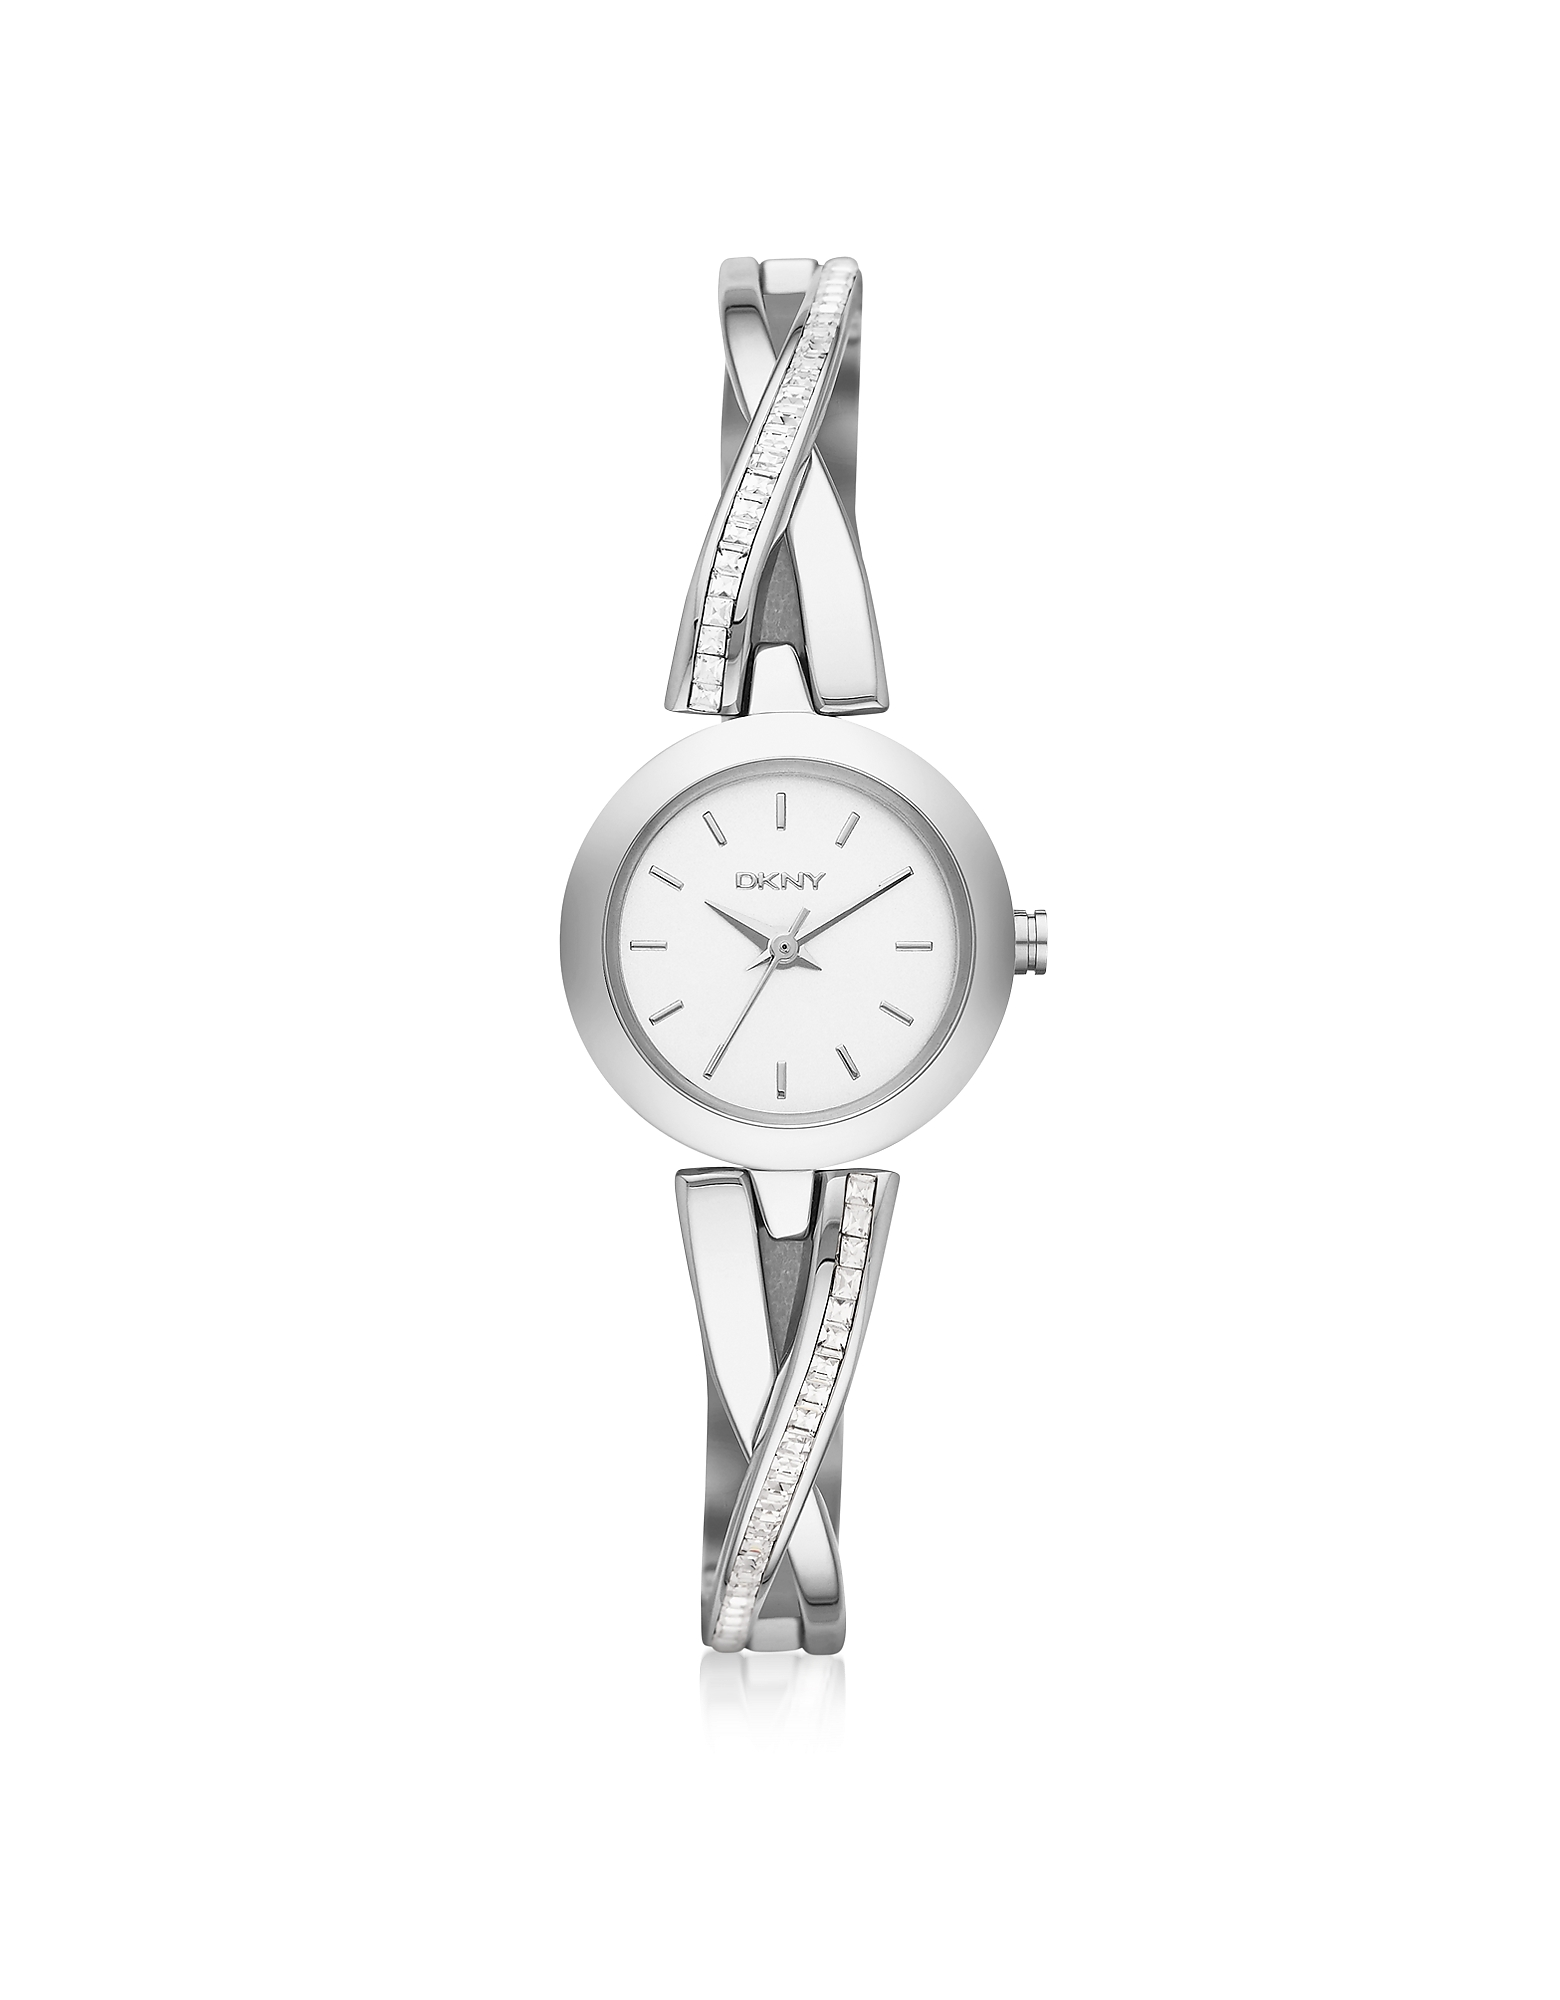 DKNY Women's Watches, Crosswalk Round Dial Silver Tone Stainless Steel Women's Watch